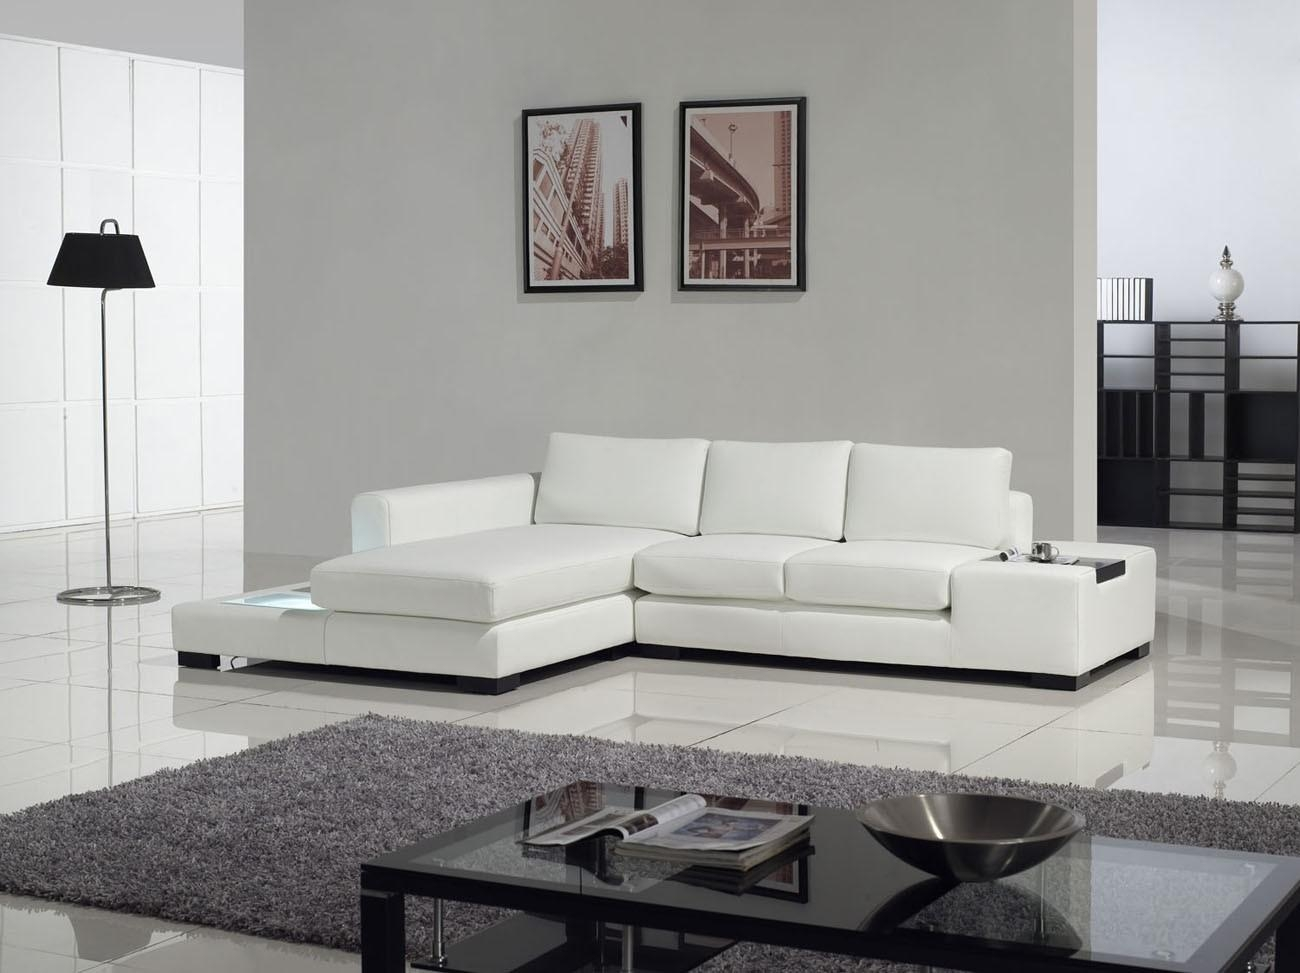 Sofa Chairs Intended For White Modern Sofas (Image 12 of 20)